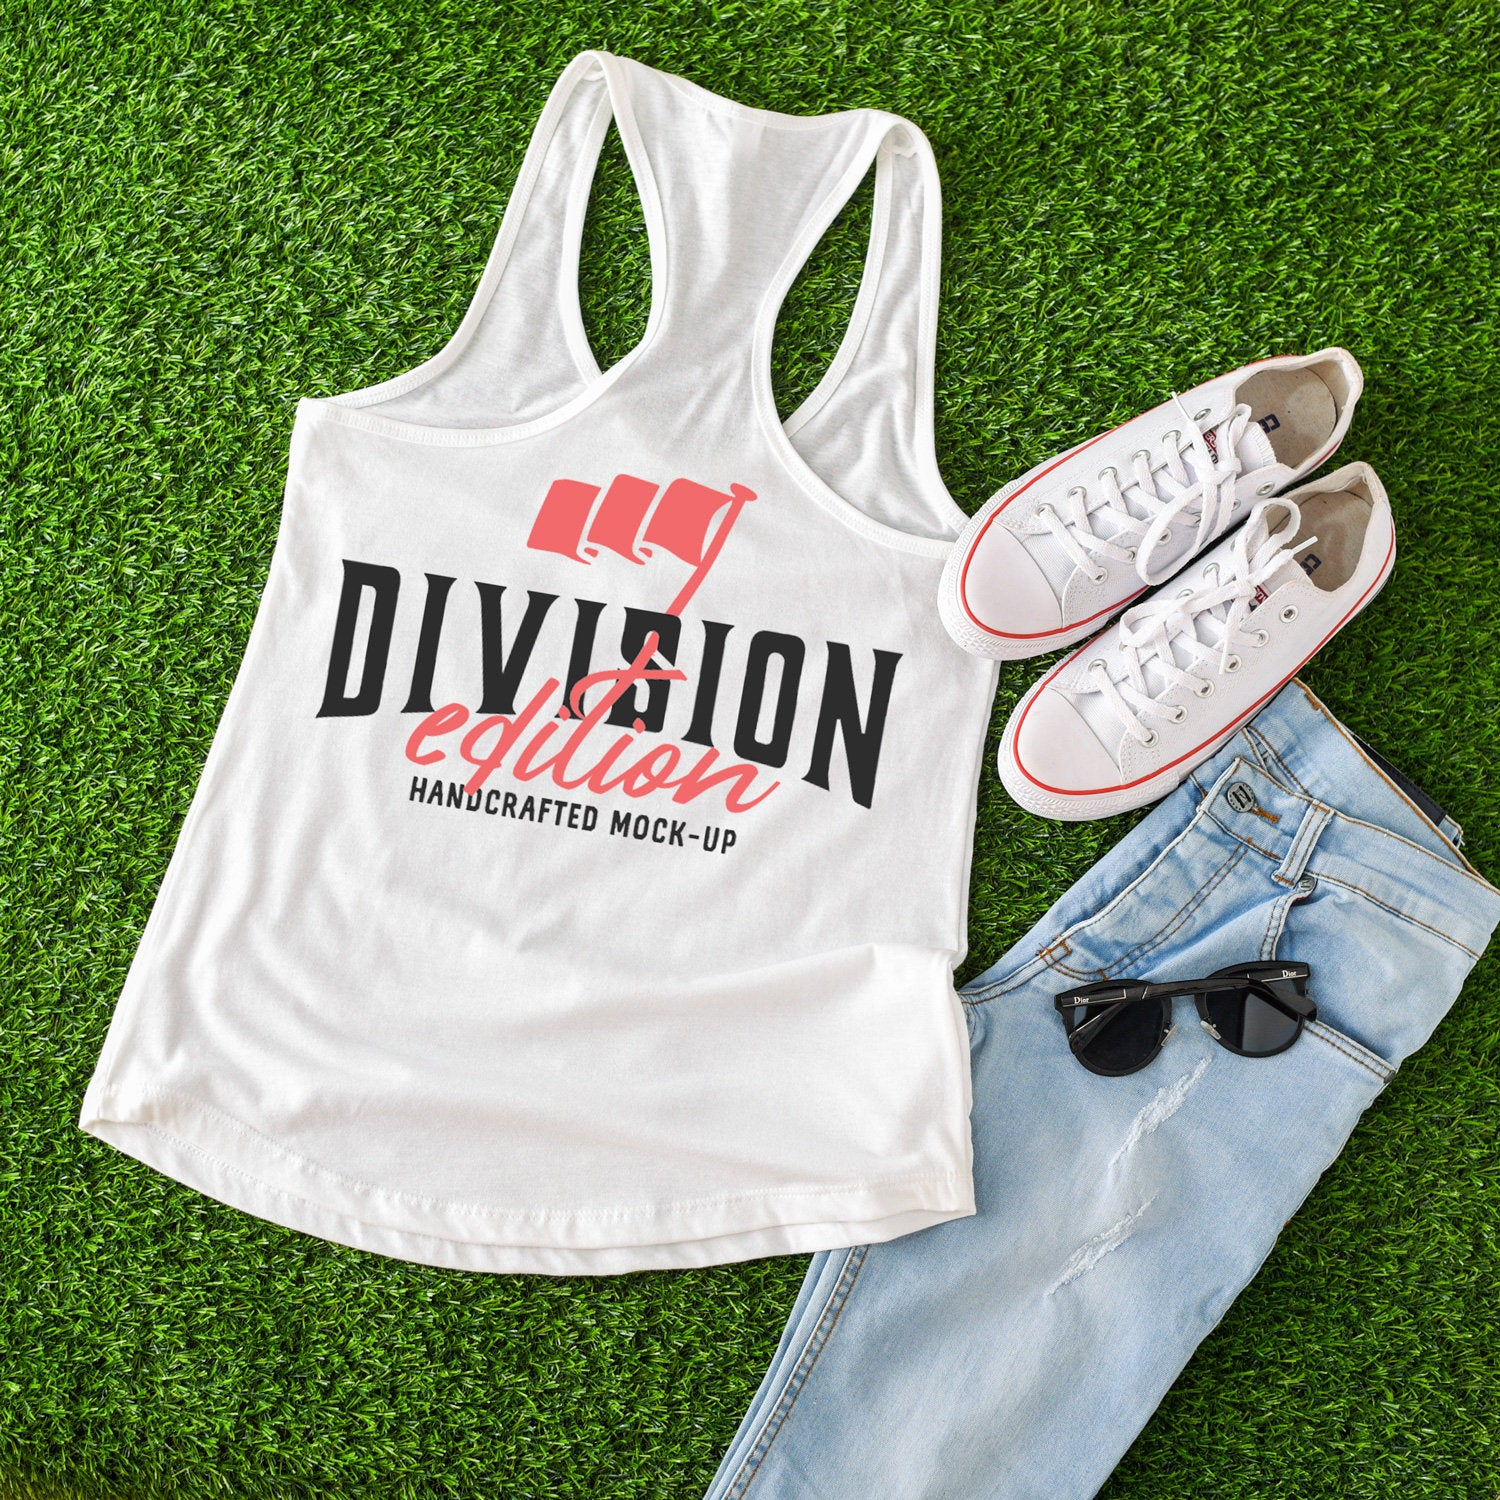 Summer Mockup 4th of July Mockup with Flags Women Ideal Racerback Tank Styled Mockup Flat Lay Next Level 1533 Black